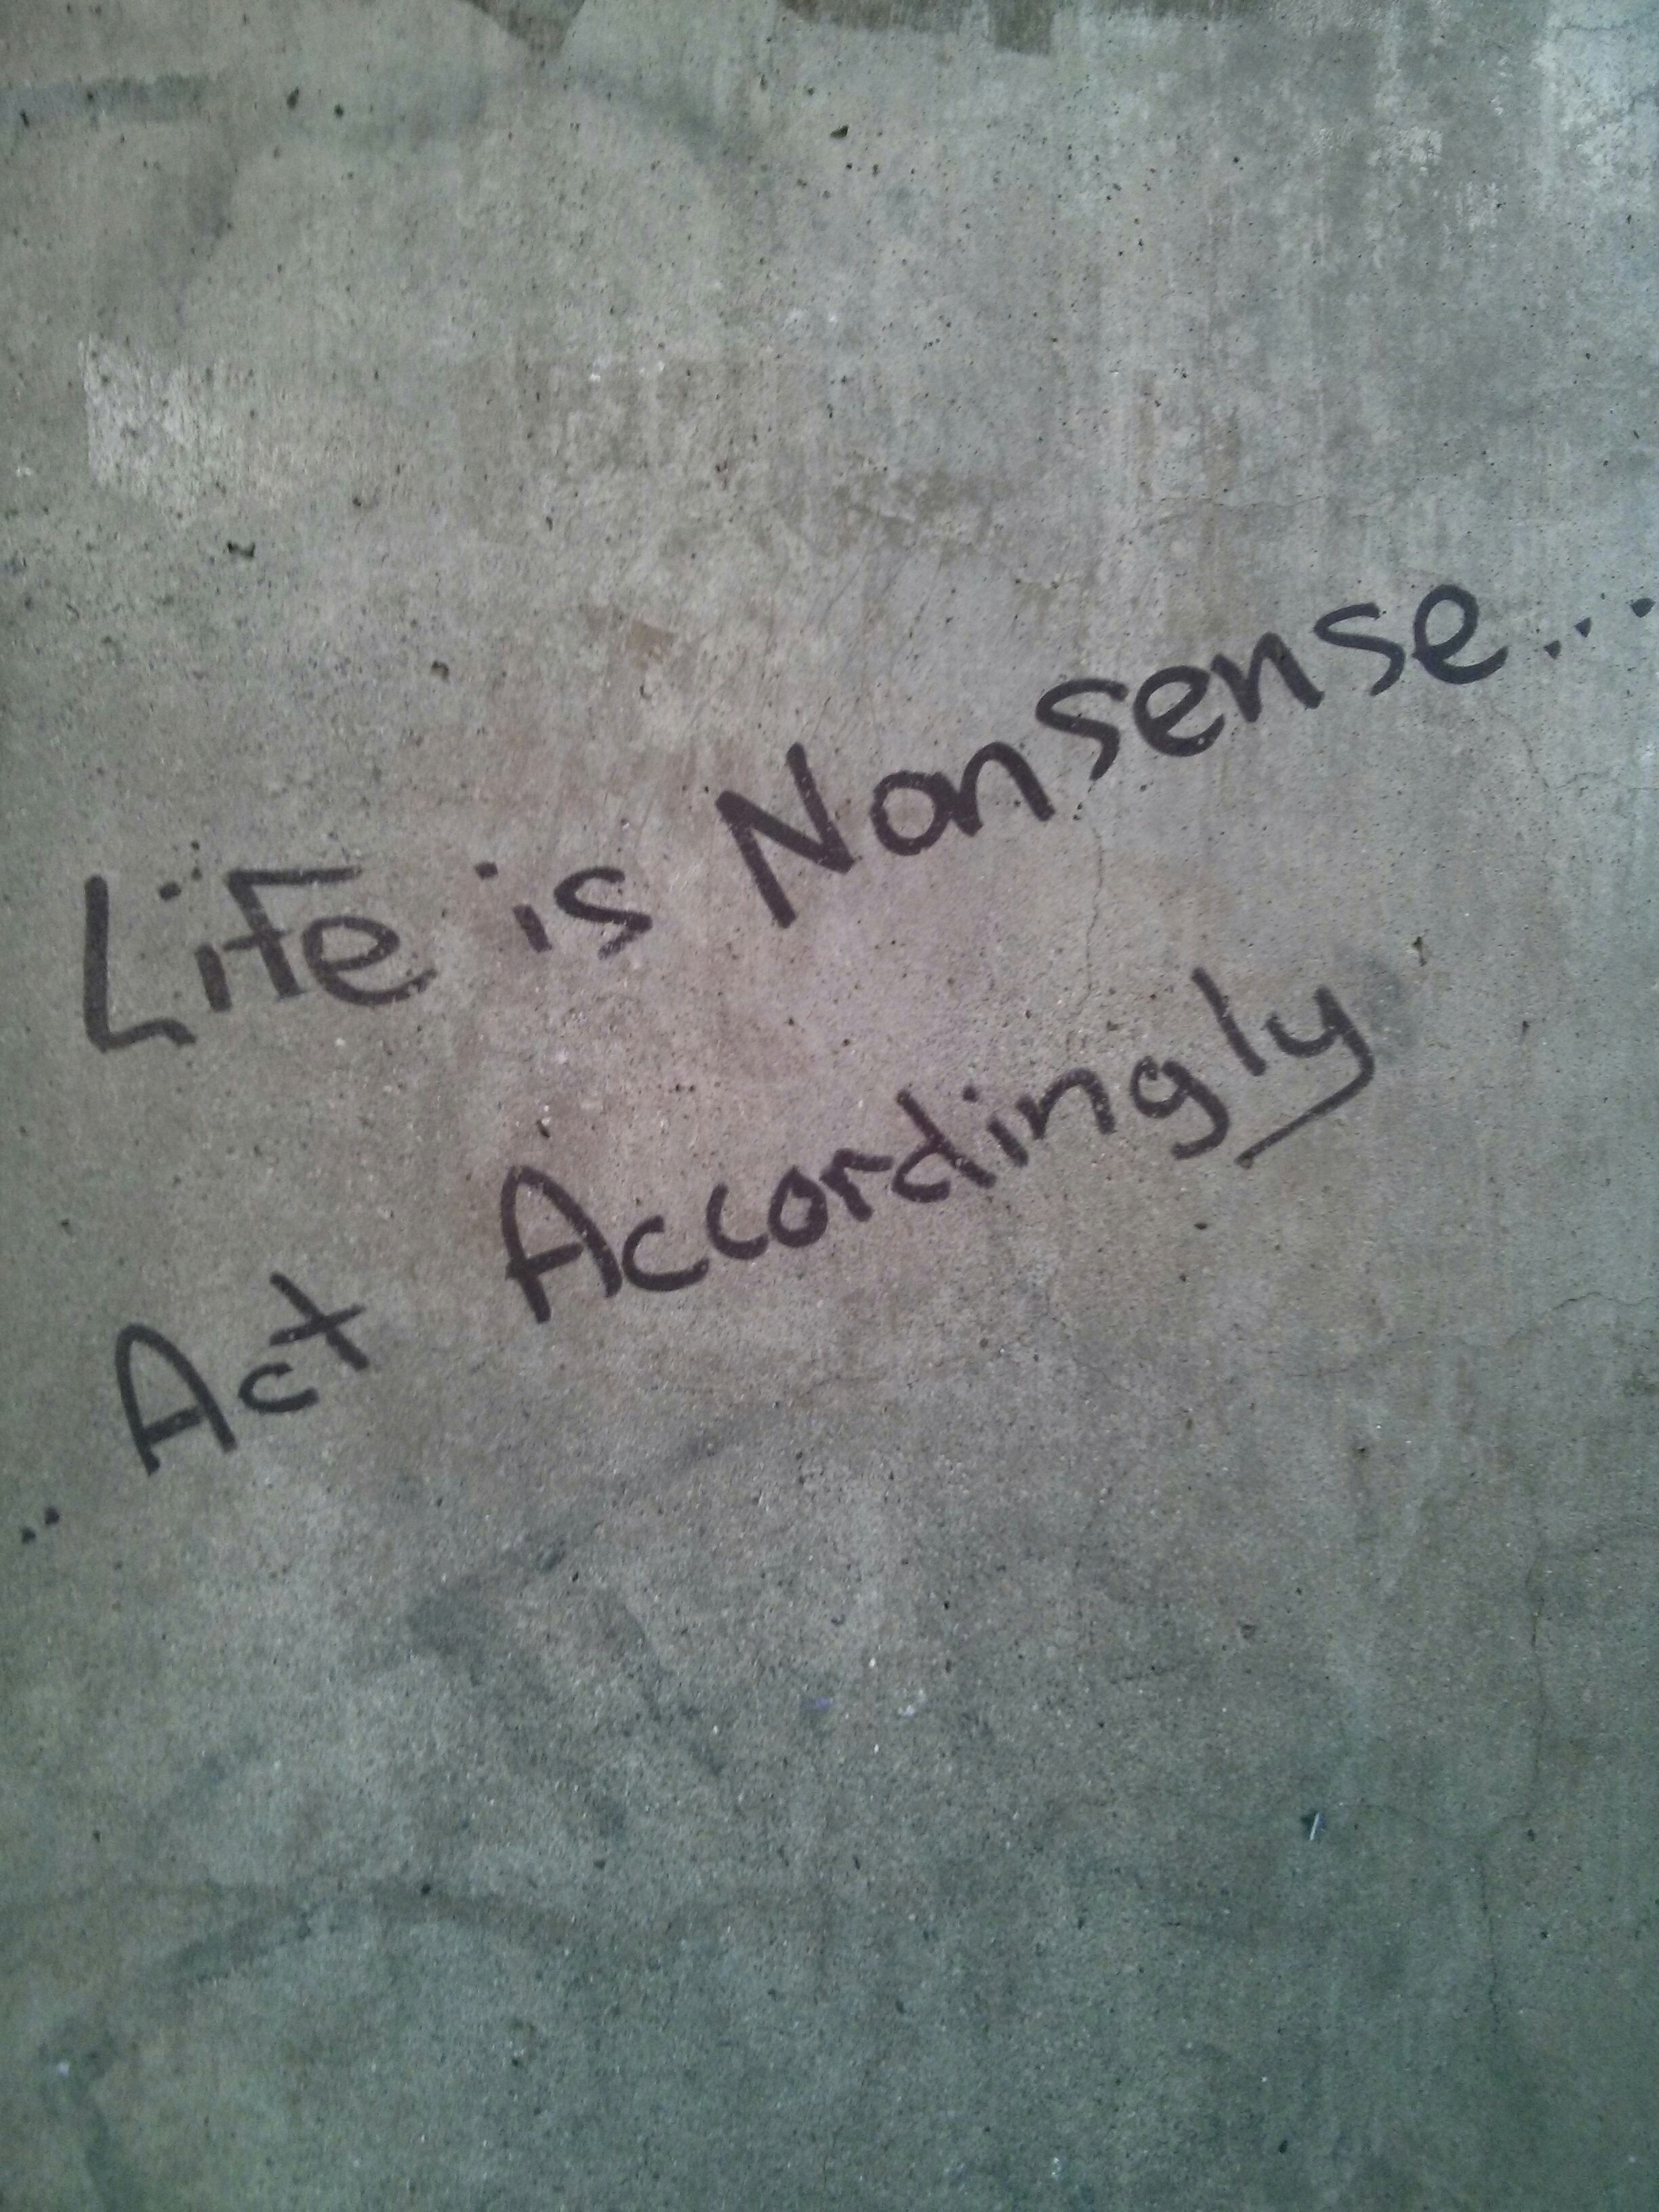 life is nonsense... act accordingly